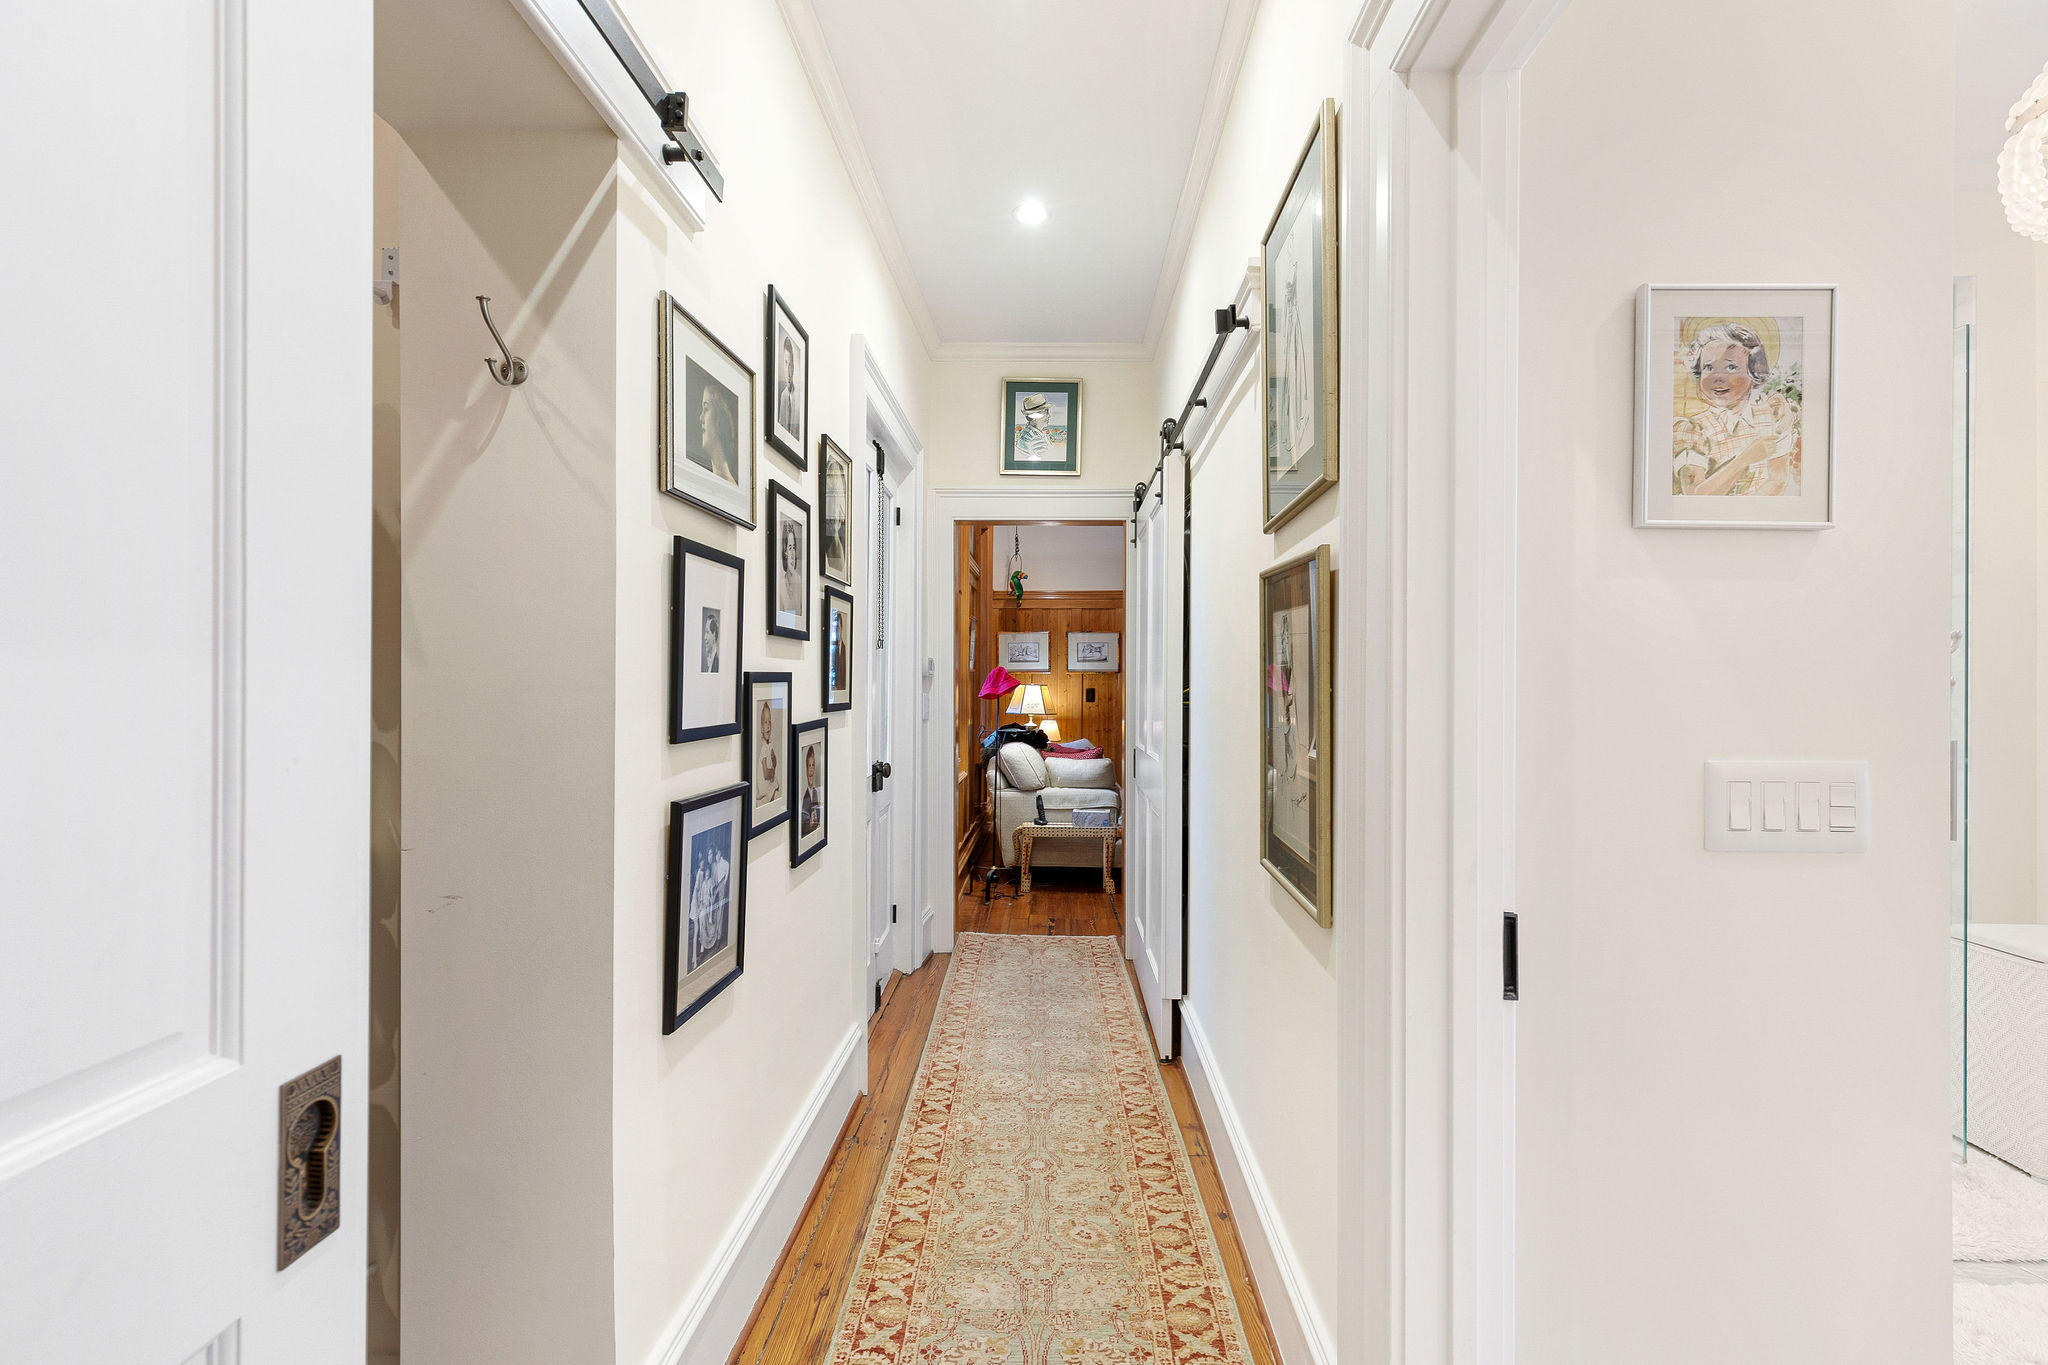 South of Broad Homes For Sale - 53 Church, Charleston, SC - 0